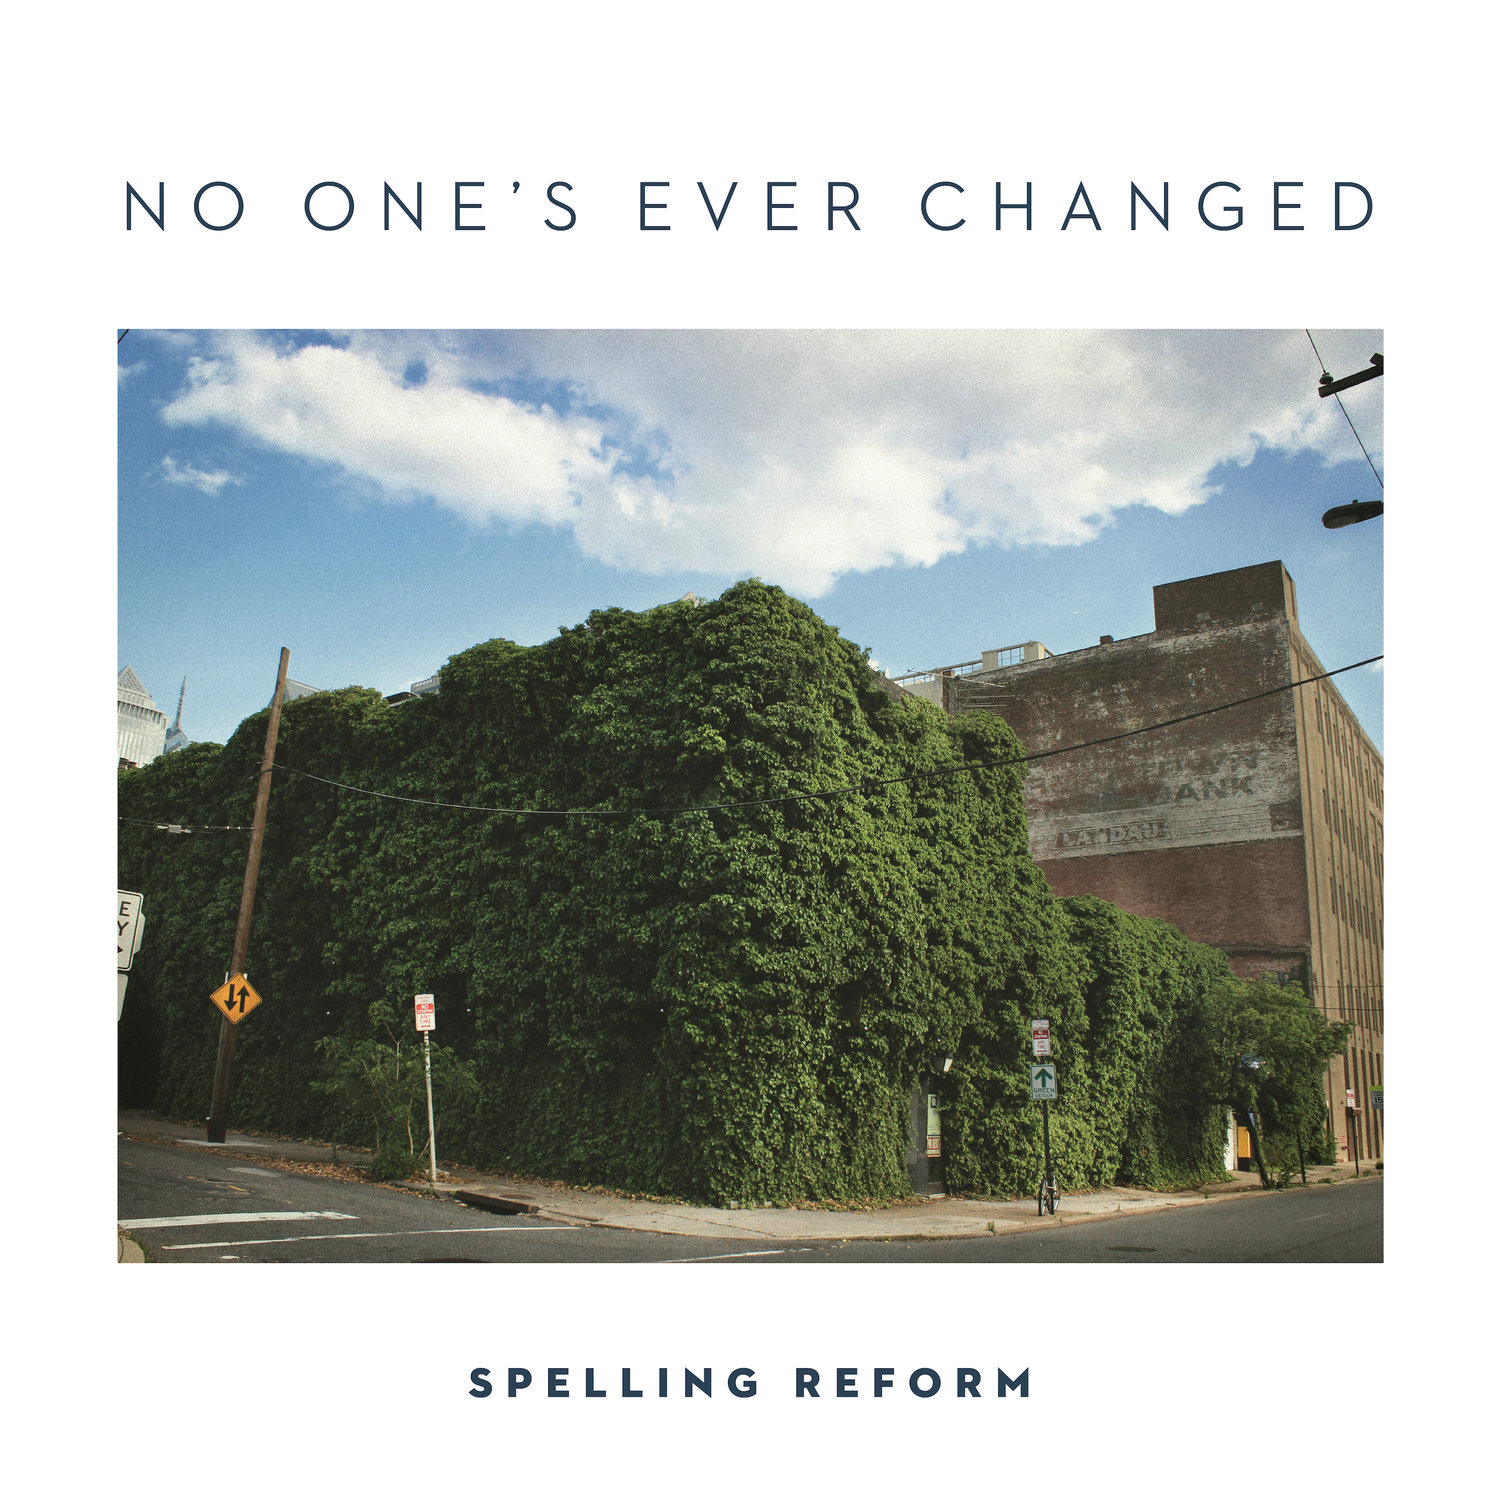 spellingreform cover Stream: Spelling Reforms new album No Ones Ever Changed